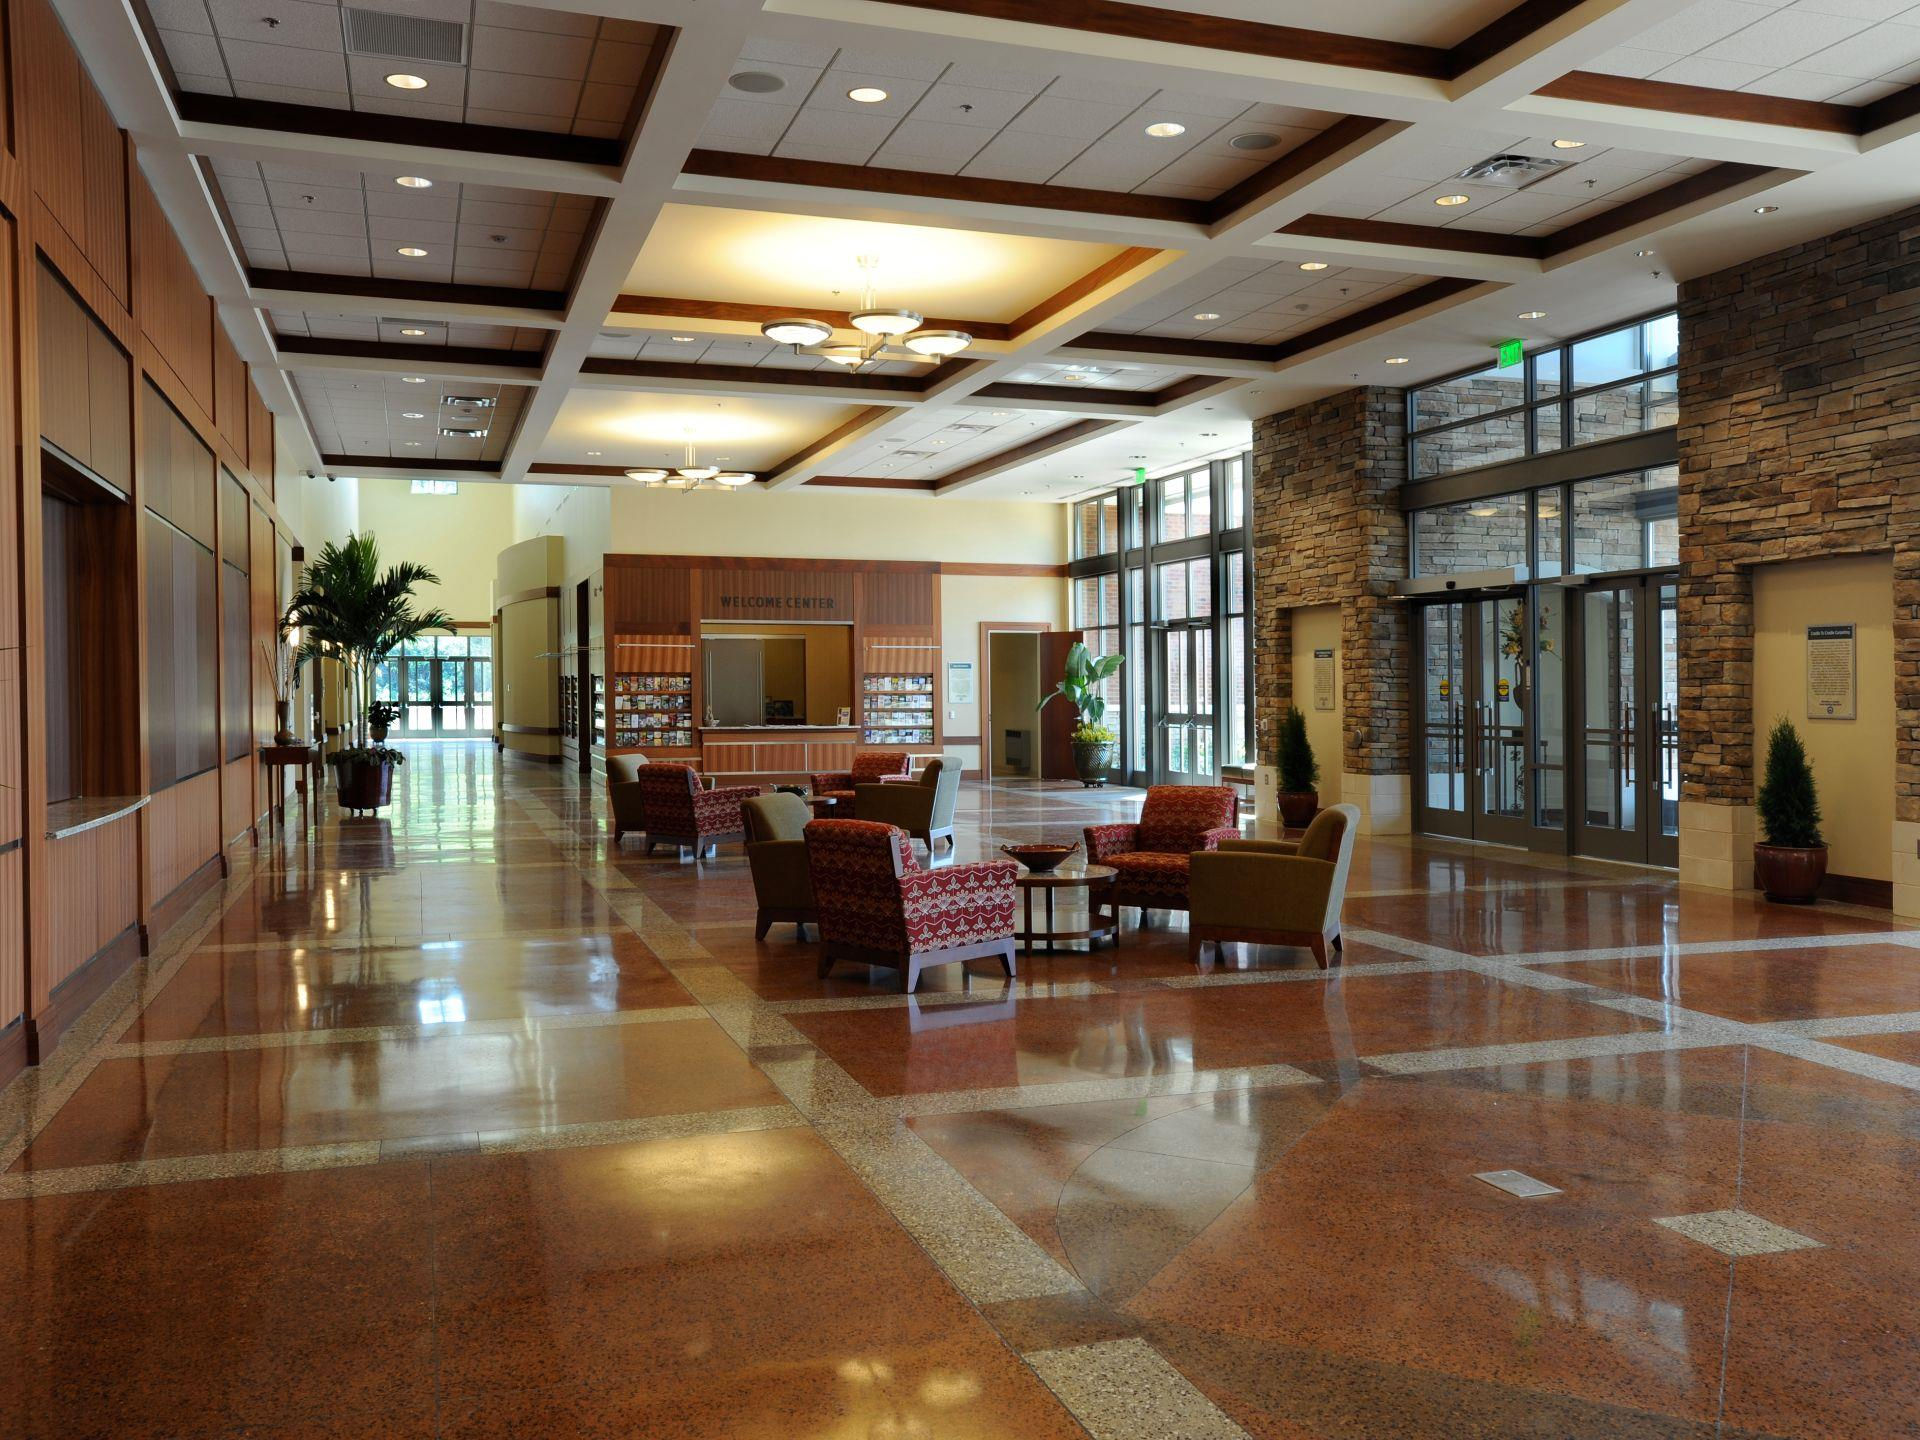 Interior lobby with stacked stone on one side amd wood paneling on adjacent wall with many windows sufficiently lighting the area